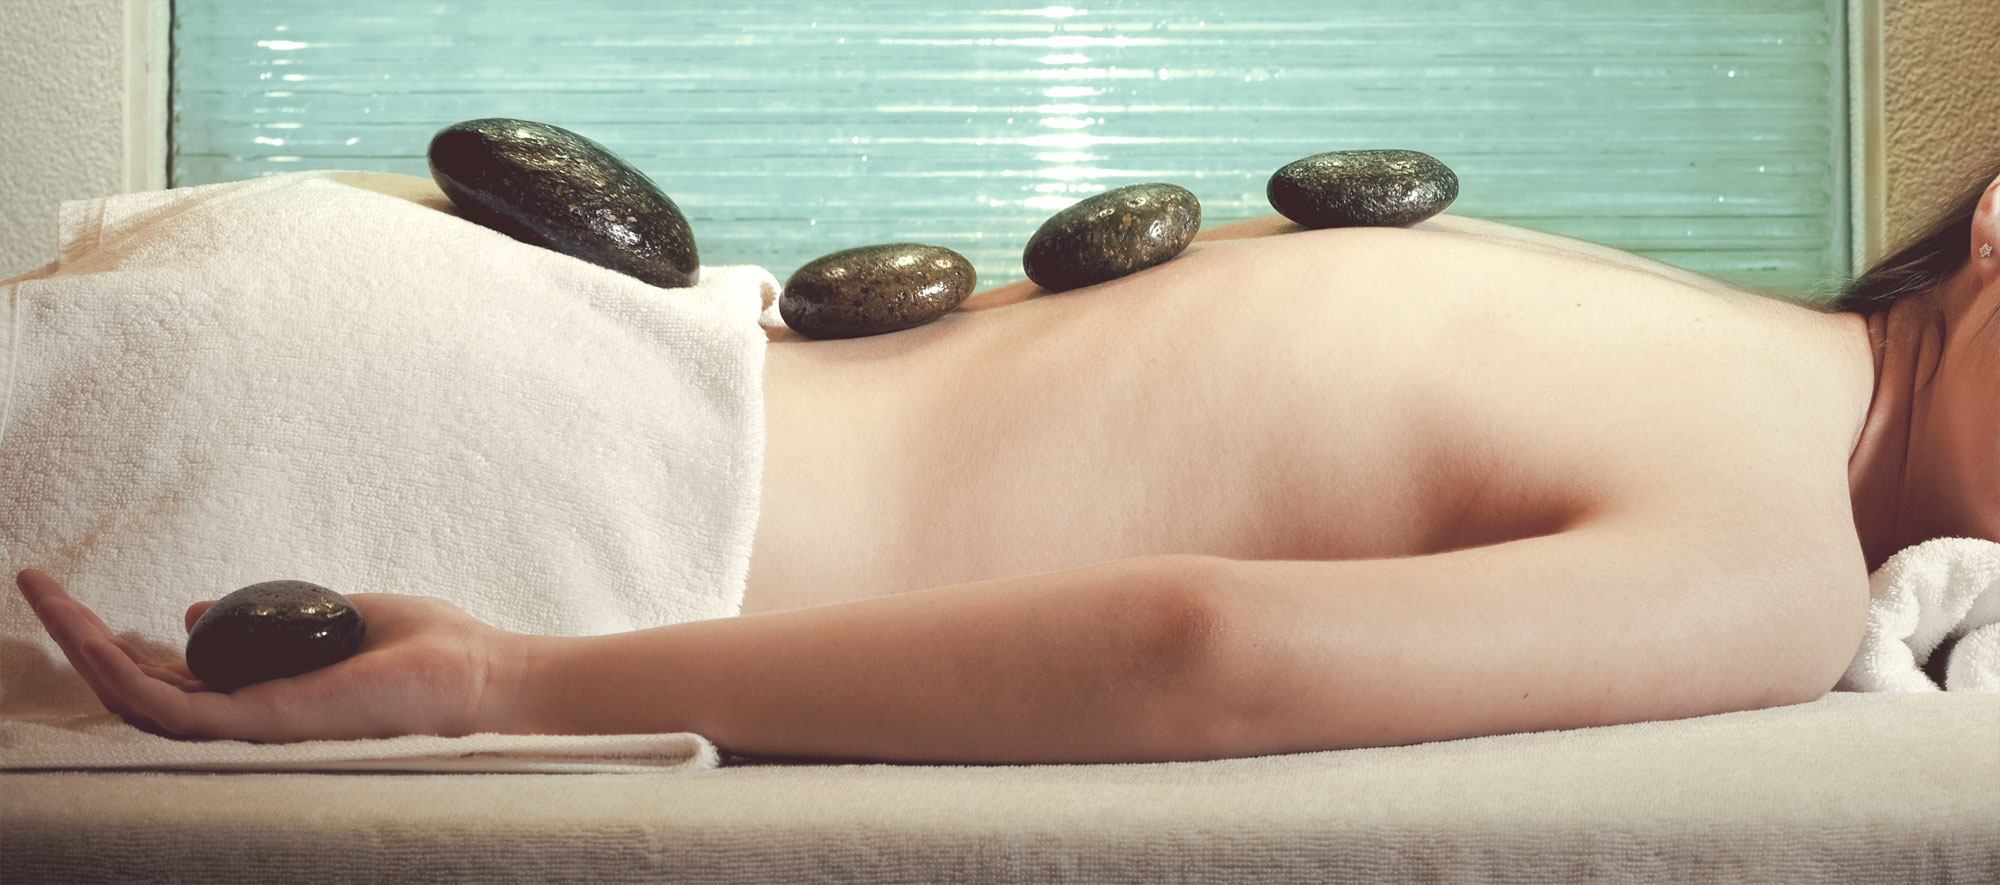 Enjoy our Heat Wave package- Get a relaxing hot stone massage (90 minutes)